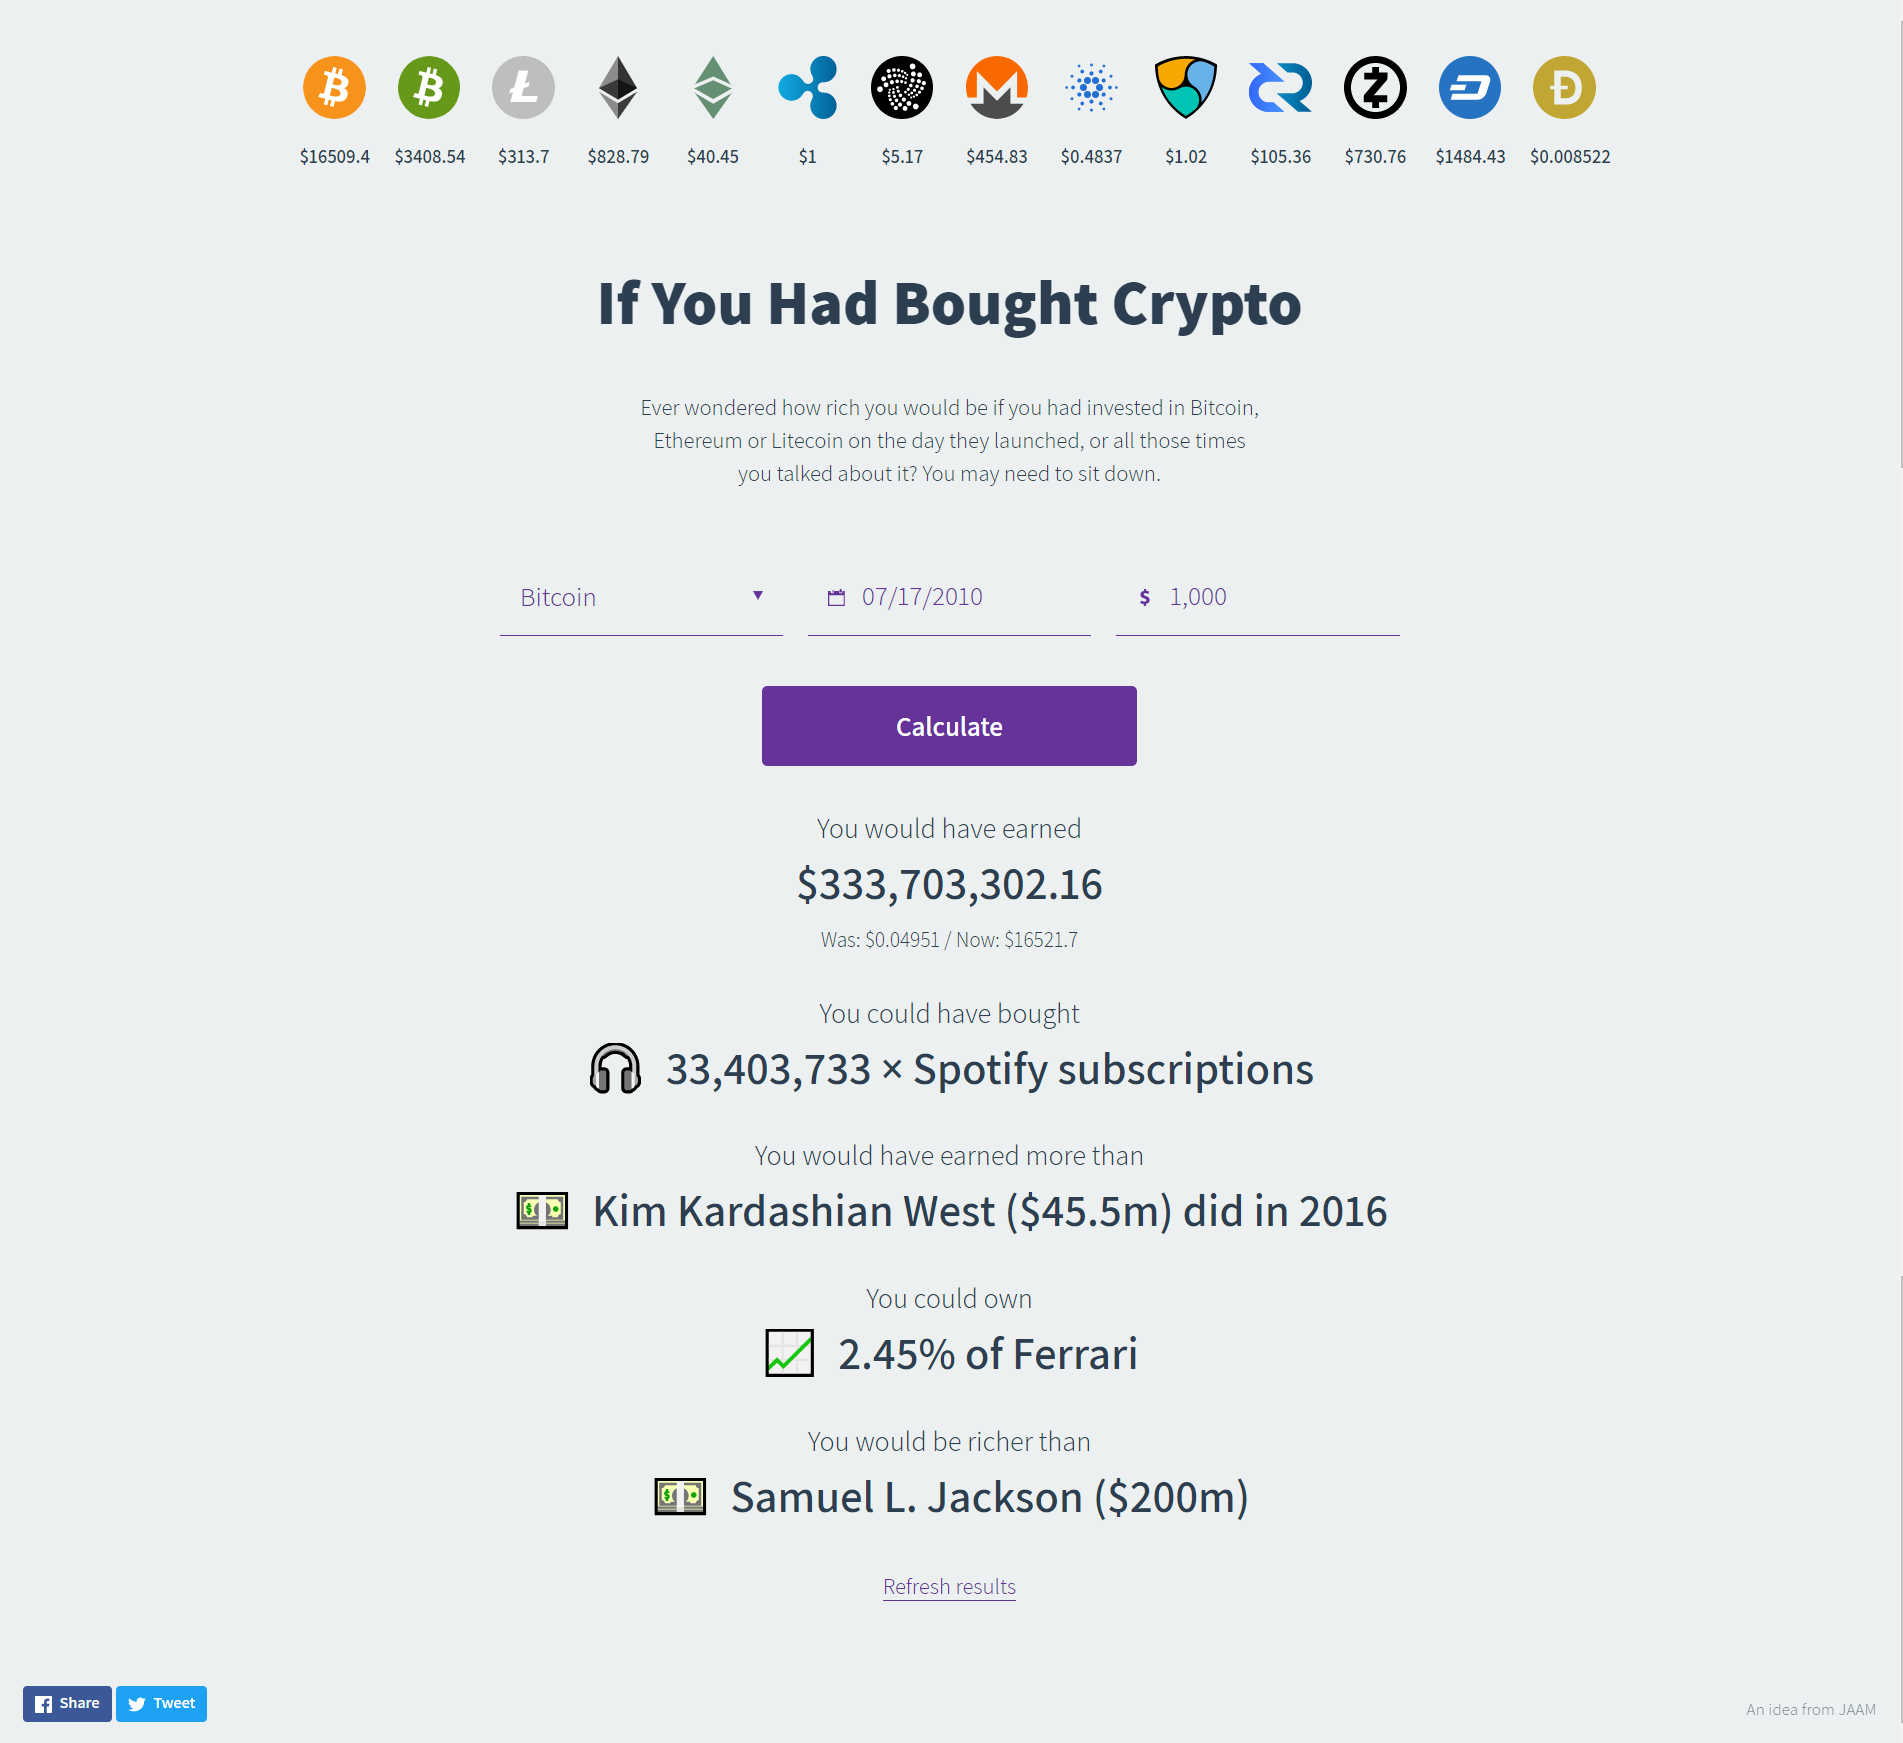 If you had bought crypto